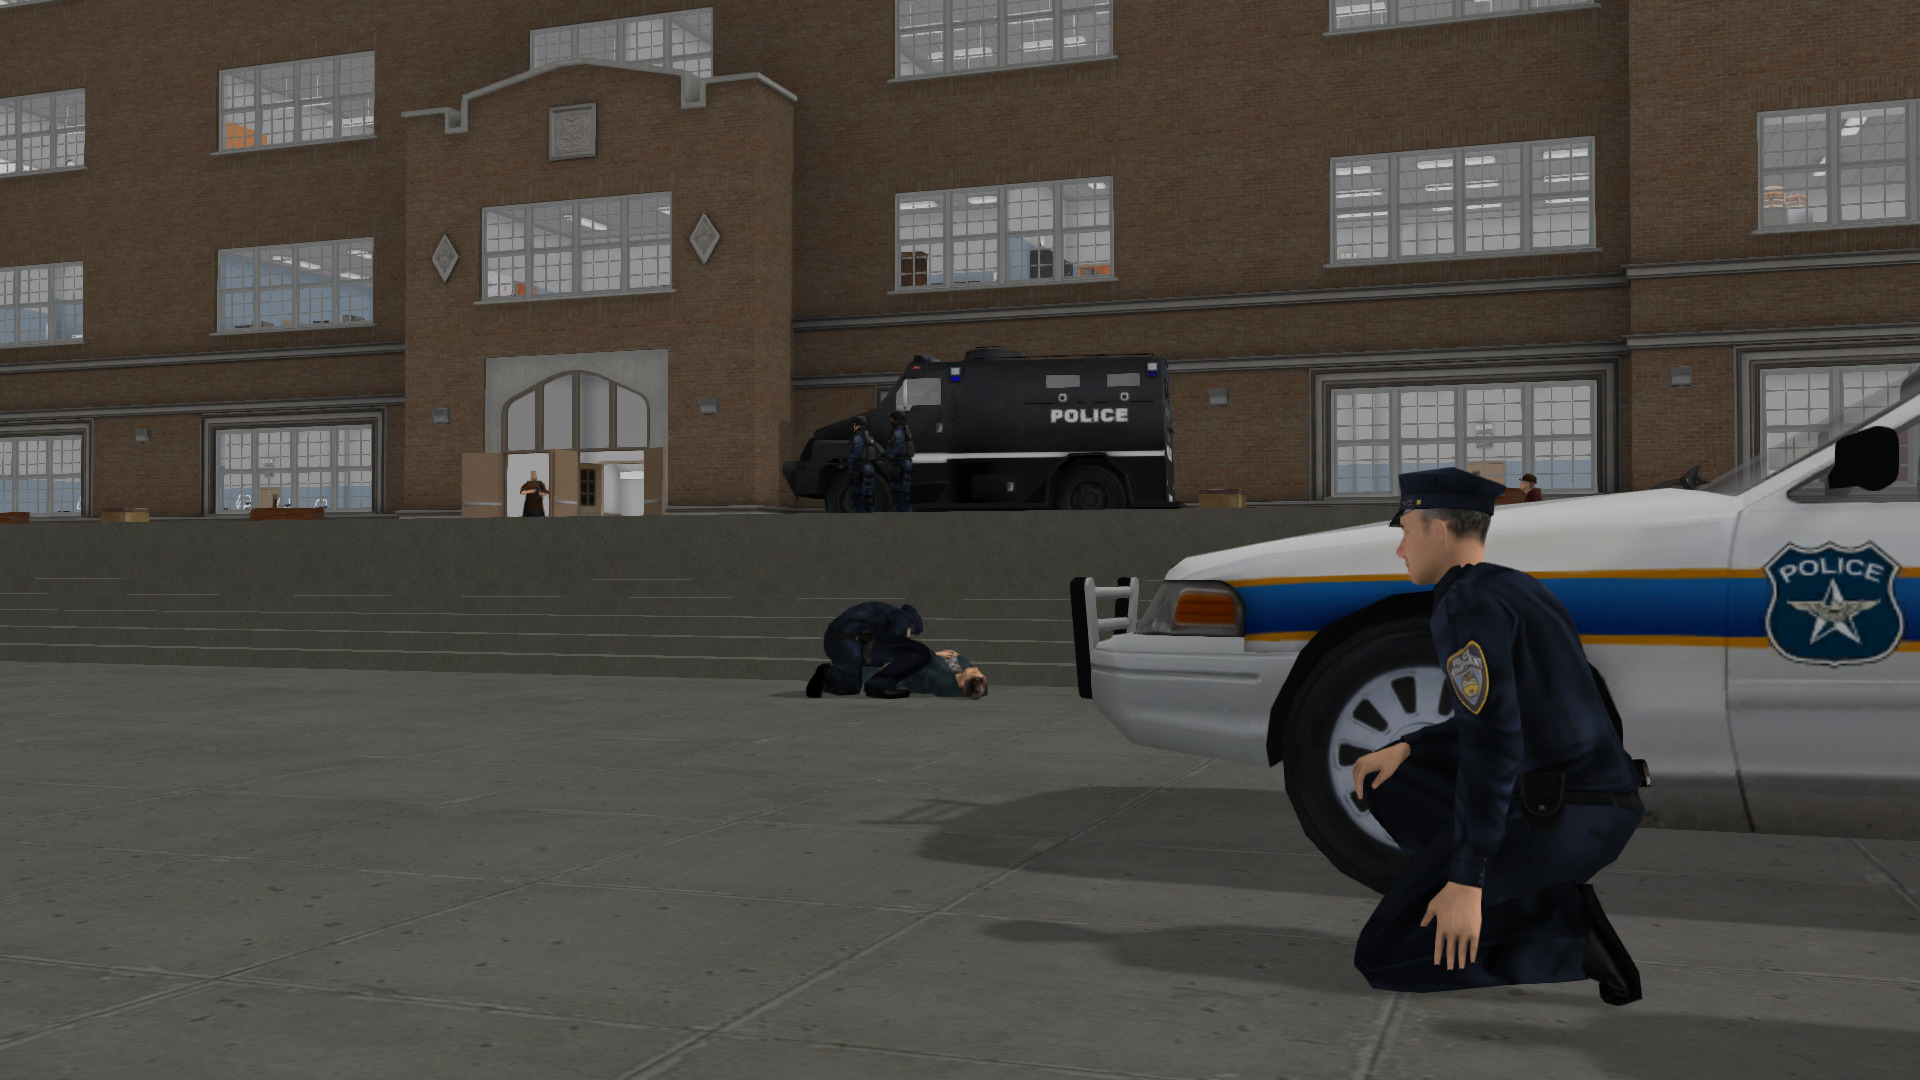 Police officers taking cover from an active shooter at a school, trained in a safe and repeatable simulated environment.